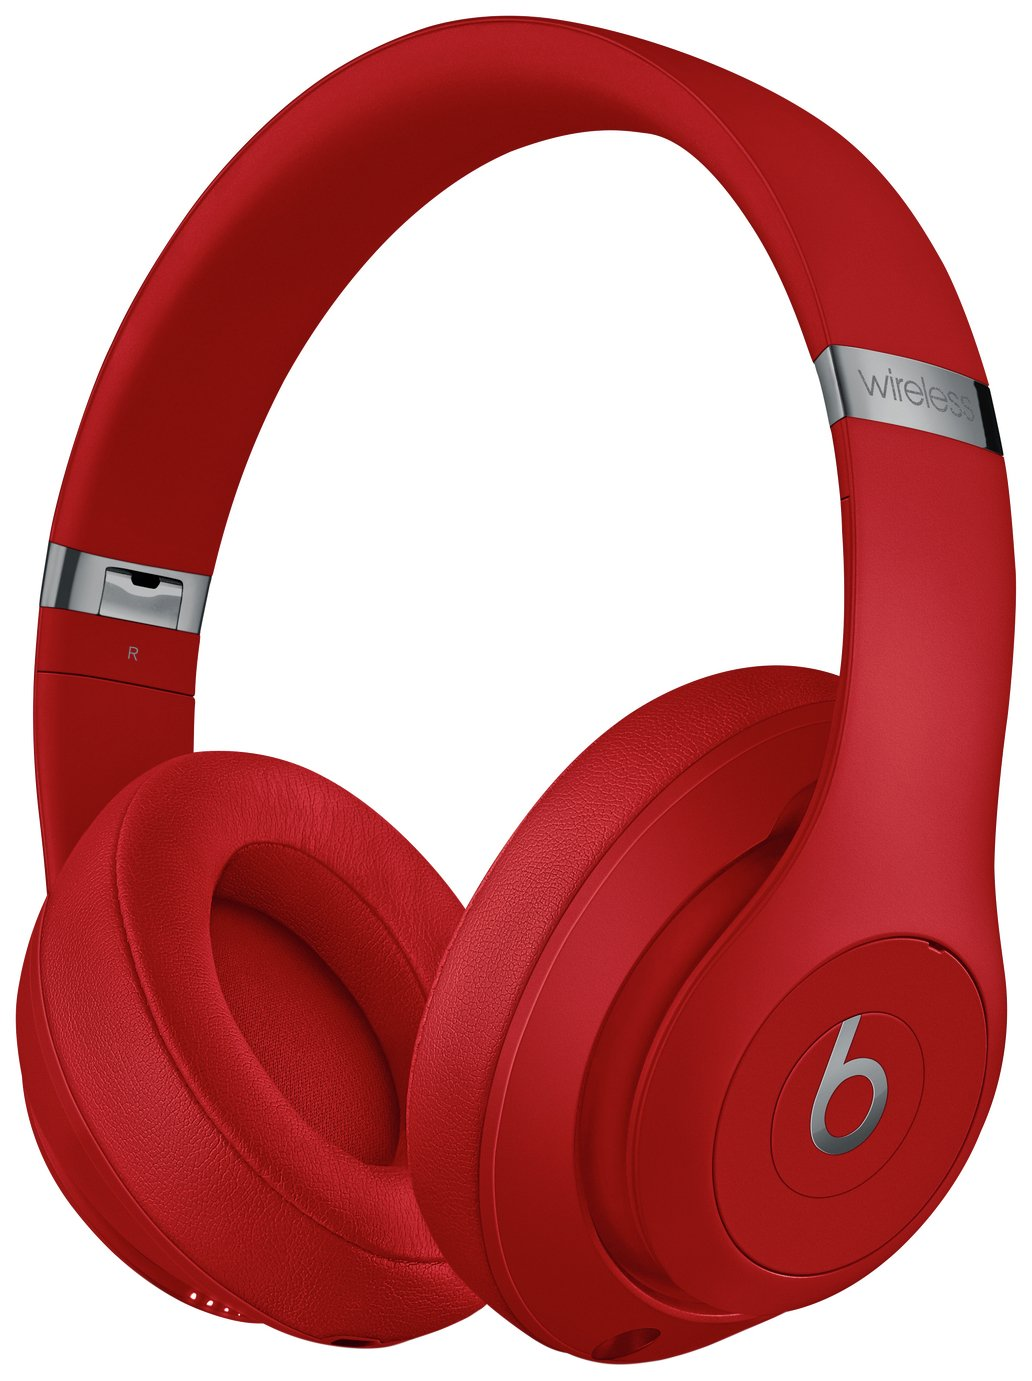 Compare retail prices of Beats by Dre Studio 3 Wireless Over Ear Headphones Red to get the best deal online